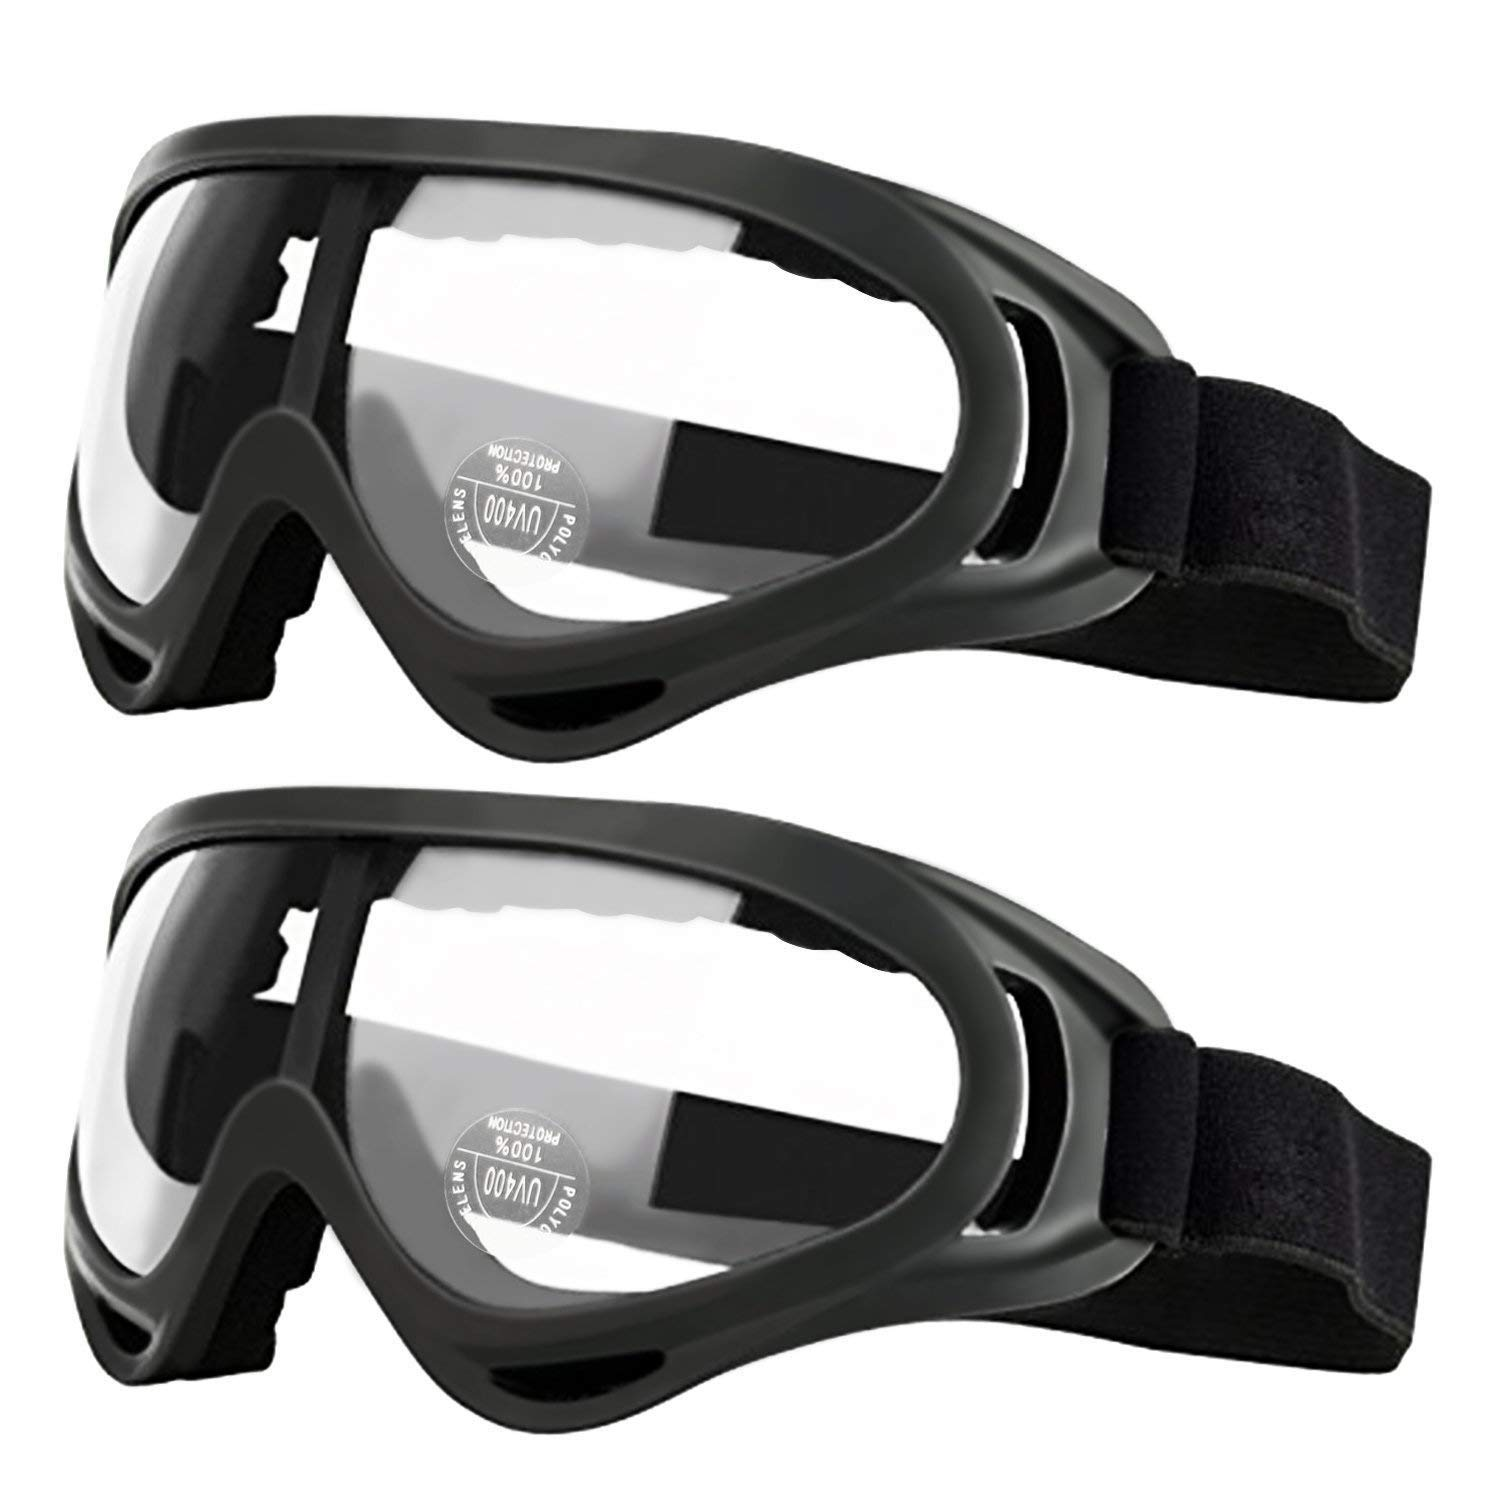 dc1fd8ac10b9 2 Pack Children s Safety Glasses with Anti Fog and UV Protection Perfect  for Foam Blasters Gun